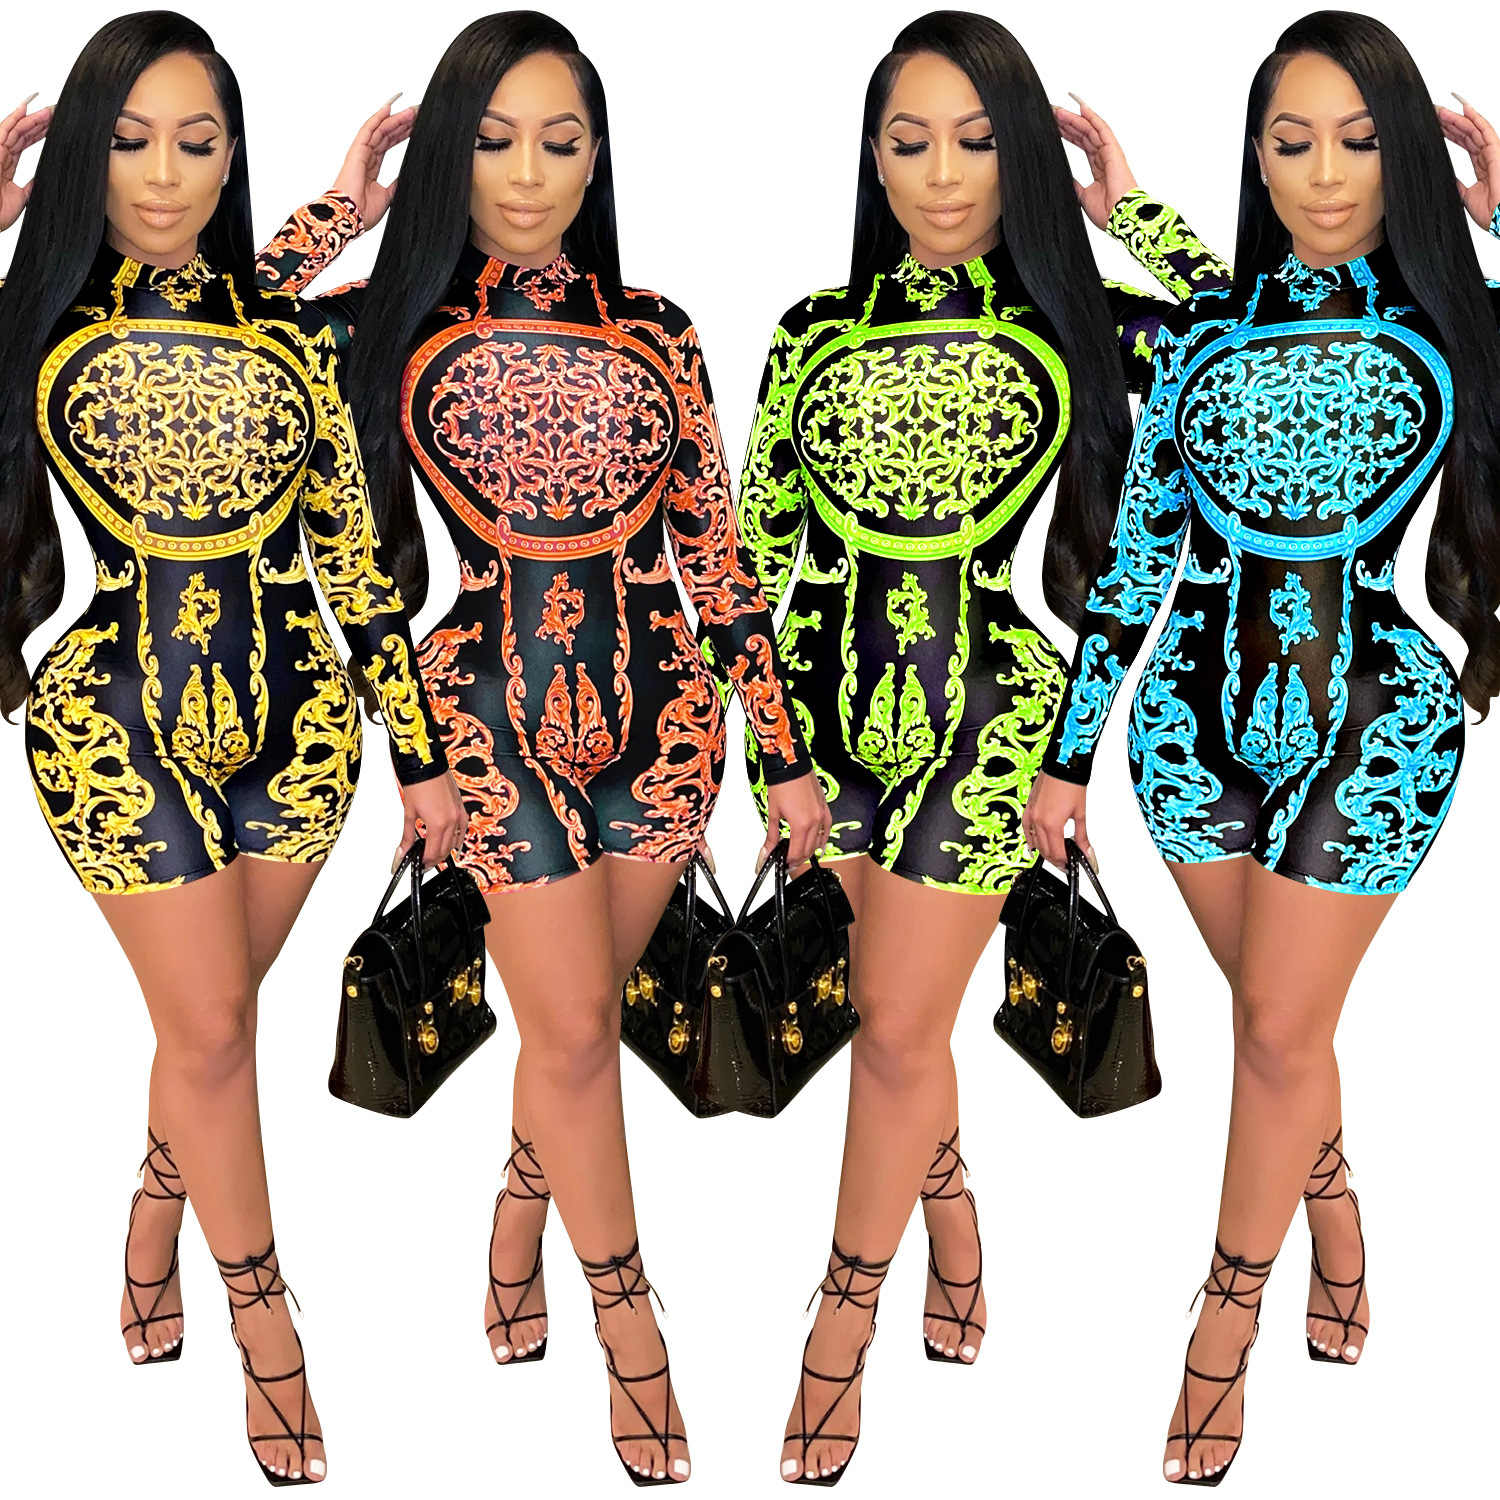 Zoctuo Playsuit Vrouwen Coltrui Sexy Rompertjes Jumpsuit Herfst Lange Mouw Print Speelpakjes Party Club Skinny Shorts Jumpsuits